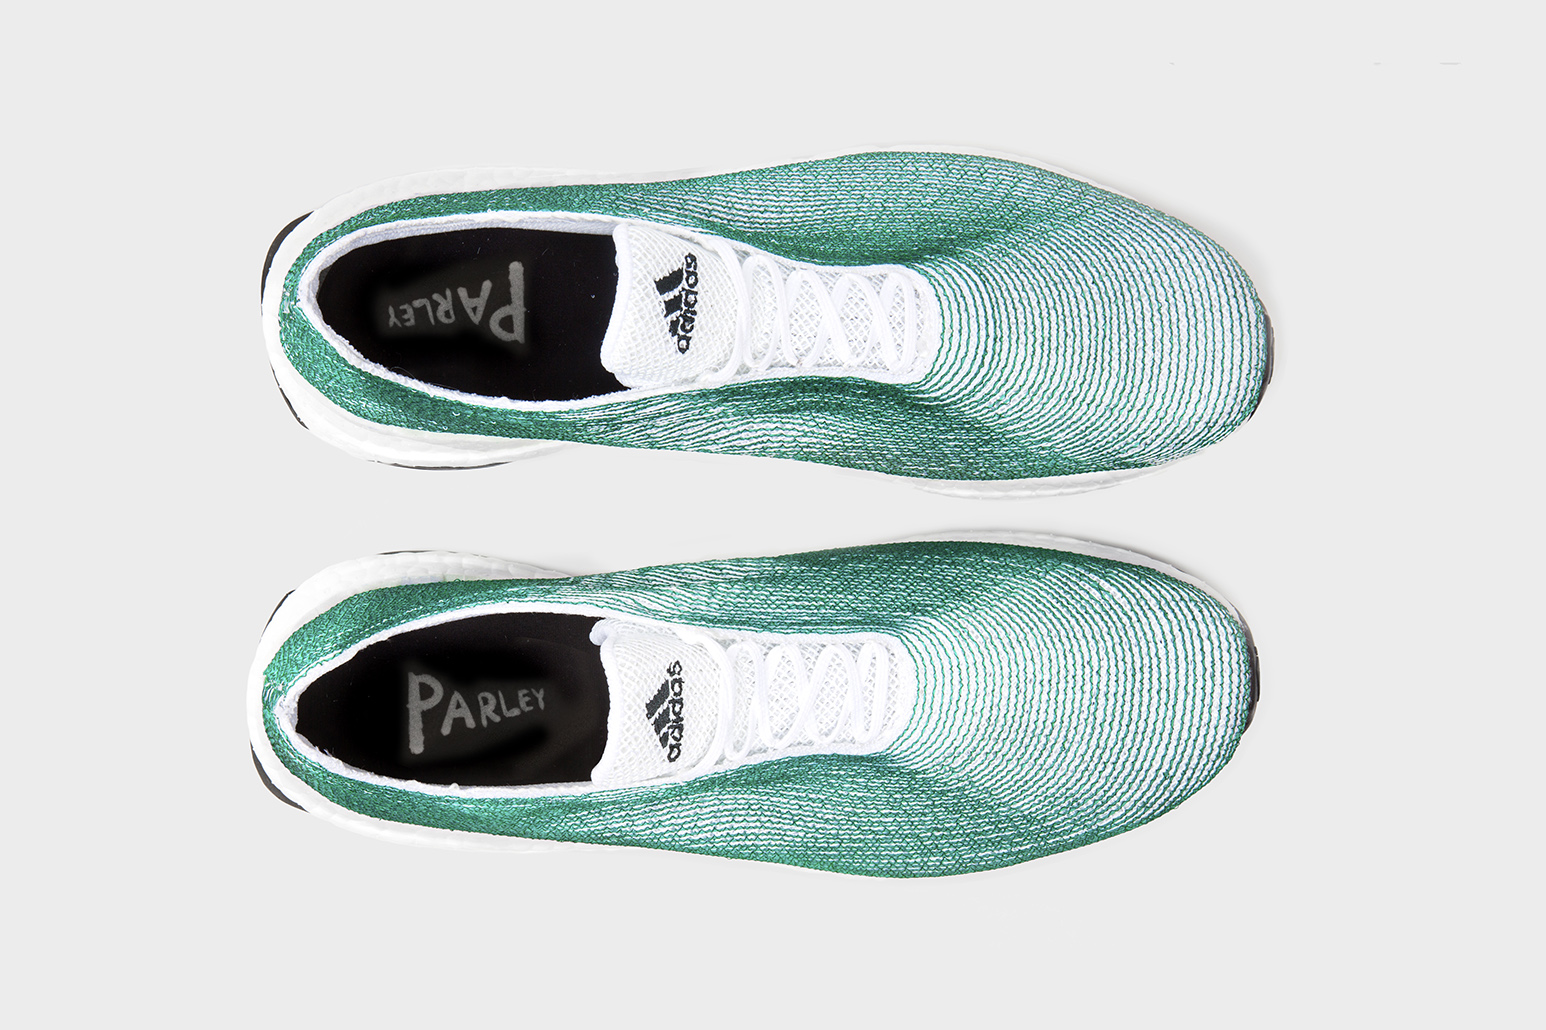 official photos 2b65d 444c5 Adidas × Parley running shoe with recycled into usable fibre. Photo by Alexander  Taylor Studio